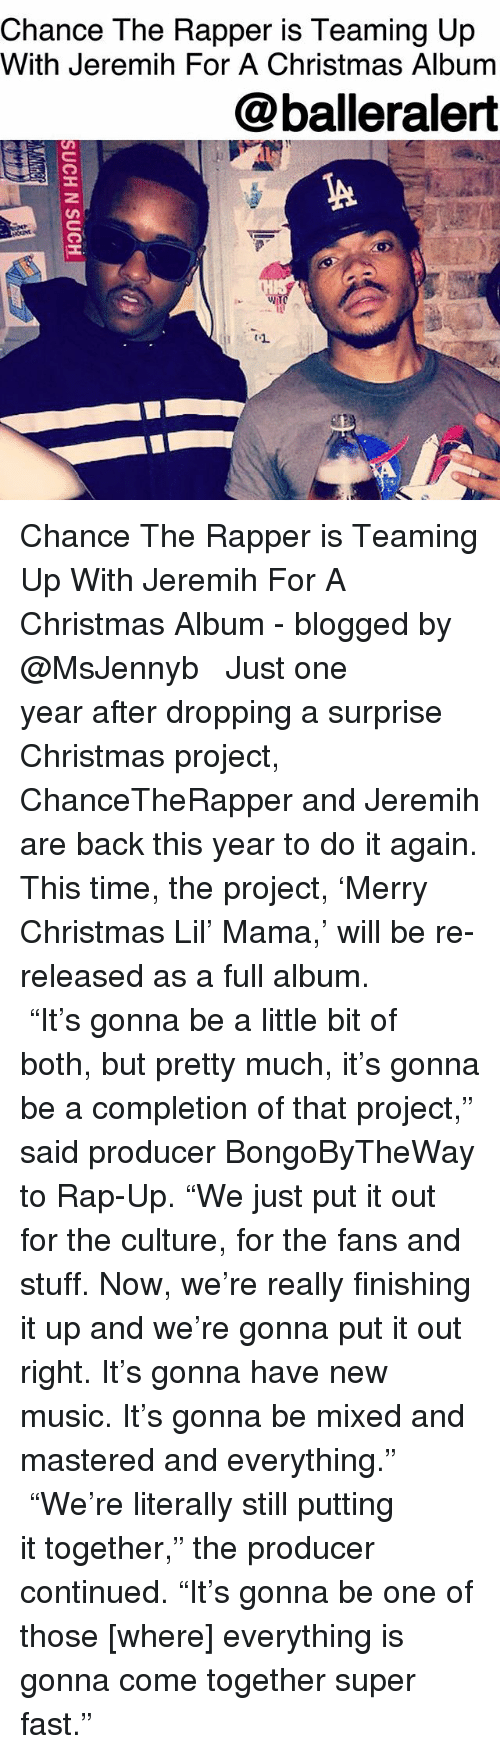 "Chance the Rapper, Christmas, and Do It Again: Chance The Rapper is Teaming Up  With Jeremih For A Christmas Album  @balleralert Chance The Rapper is Teaming Up With Jeremih For A Christmas Album - blogged by @MsJennyb ⠀⠀⠀⠀⠀⠀⠀ ⠀⠀⠀⠀⠀⠀⠀ Just one year after dropping a surprise Christmas project, ChanceTheRapper and Jeremih are back this year to do it again. This time, the project, 'Merry Christmas Lil' Mama,' will be re-released as a full album. ⠀⠀⠀⠀⠀⠀⠀ ⠀⠀⠀⠀⠀⠀⠀ ""It's gonna be a little bit of both, but pretty much, it's gonna be a completion of that project,"" said producer BongoByTheWay to Rap-Up. ""We just put it out for the culture, for the fans and stuff. Now, we're really finishing it up and we're gonna put it out right. It's gonna have new music. It's gonna be mixed and mastered and everything."" ⠀⠀⠀⠀⠀⠀⠀ ⠀⠀⠀⠀⠀⠀⠀ ""We're literally still putting it together,"" the producer continued. ""It's gonna be one of those [where] everything is gonna come together super fast."""